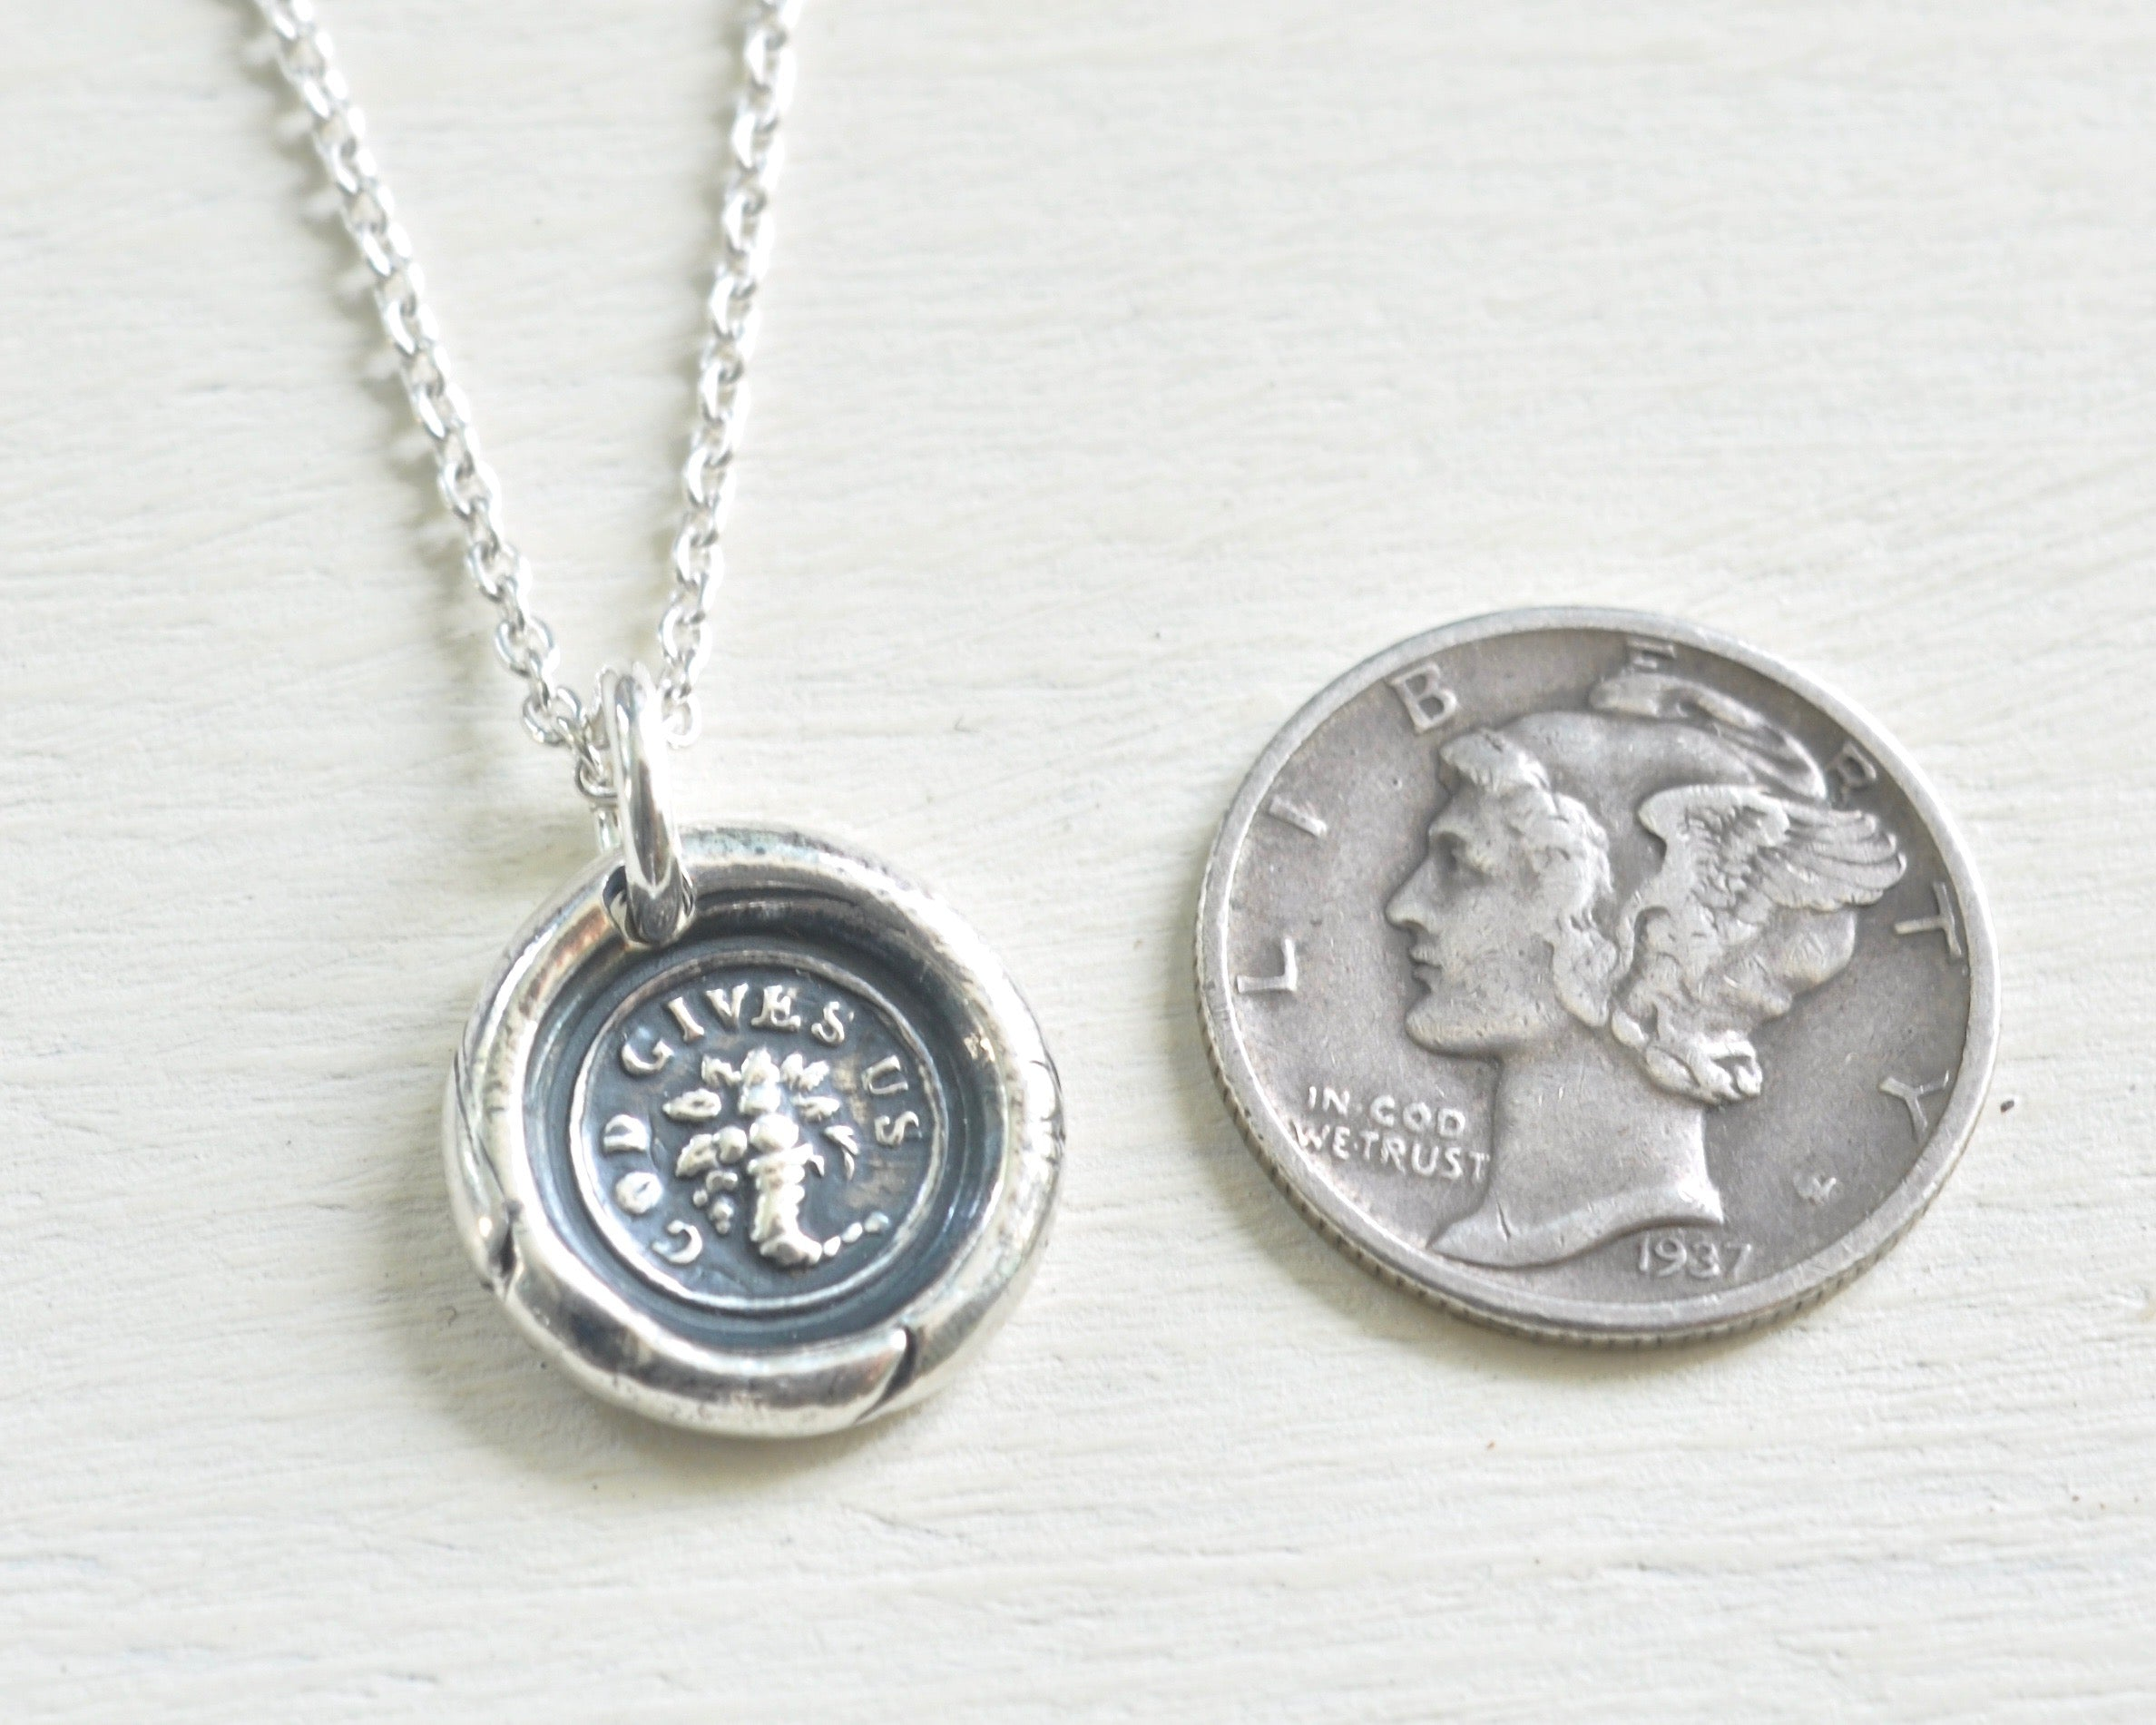 Cornucopia wax seal necklace god gives us horn of plenty cornucopia wax seal necklace god gives us horn of plenty mozeypictures